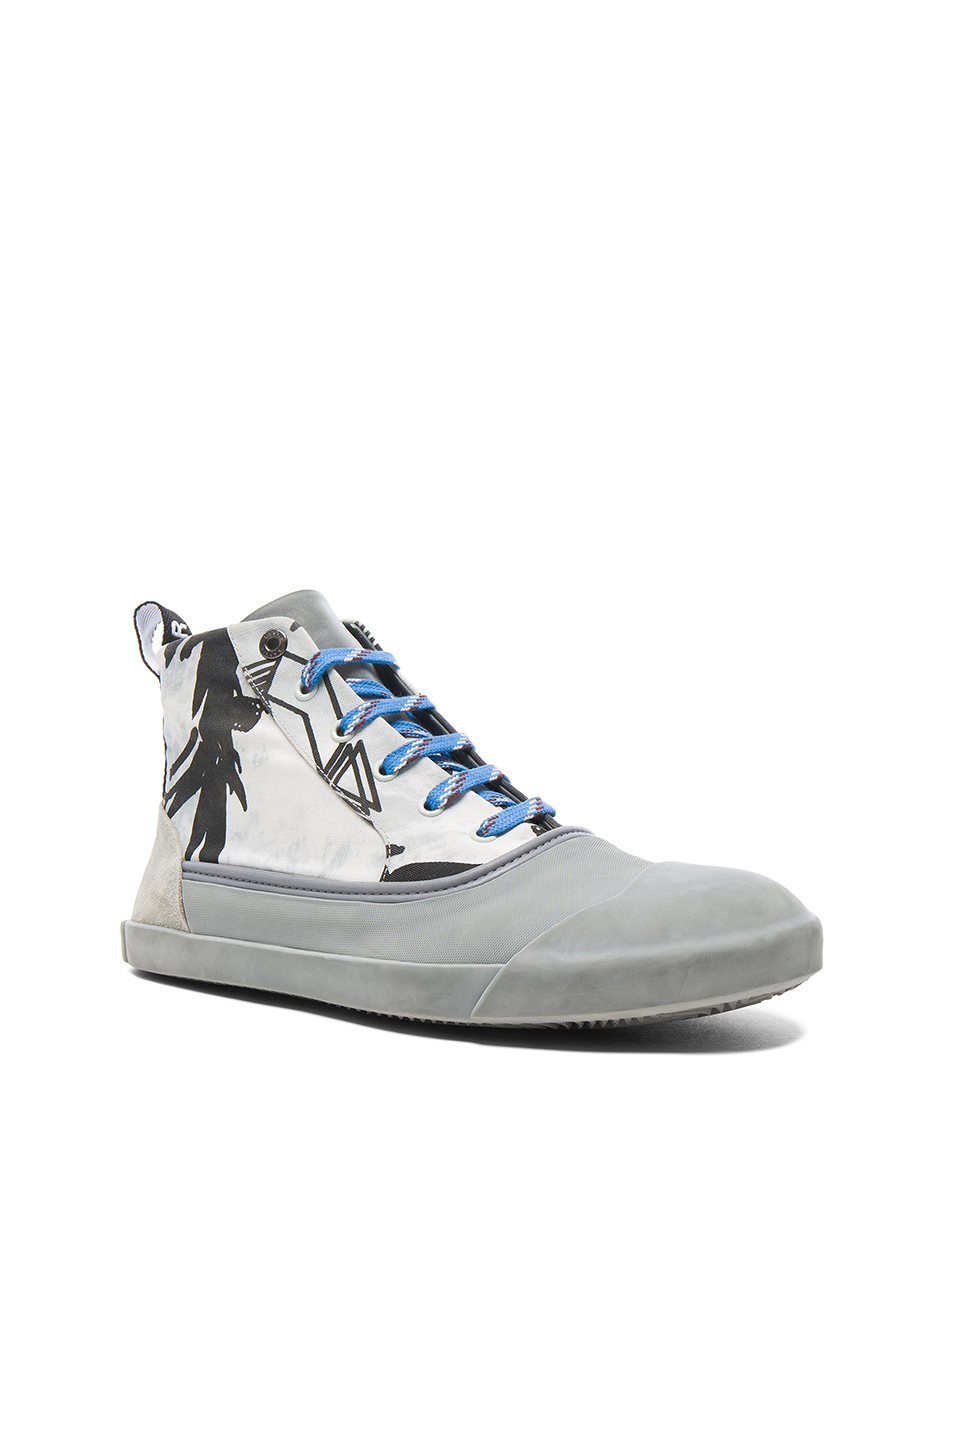 Lanvin Printed Canvas Mid Top Sneakers in Gray,Abstract